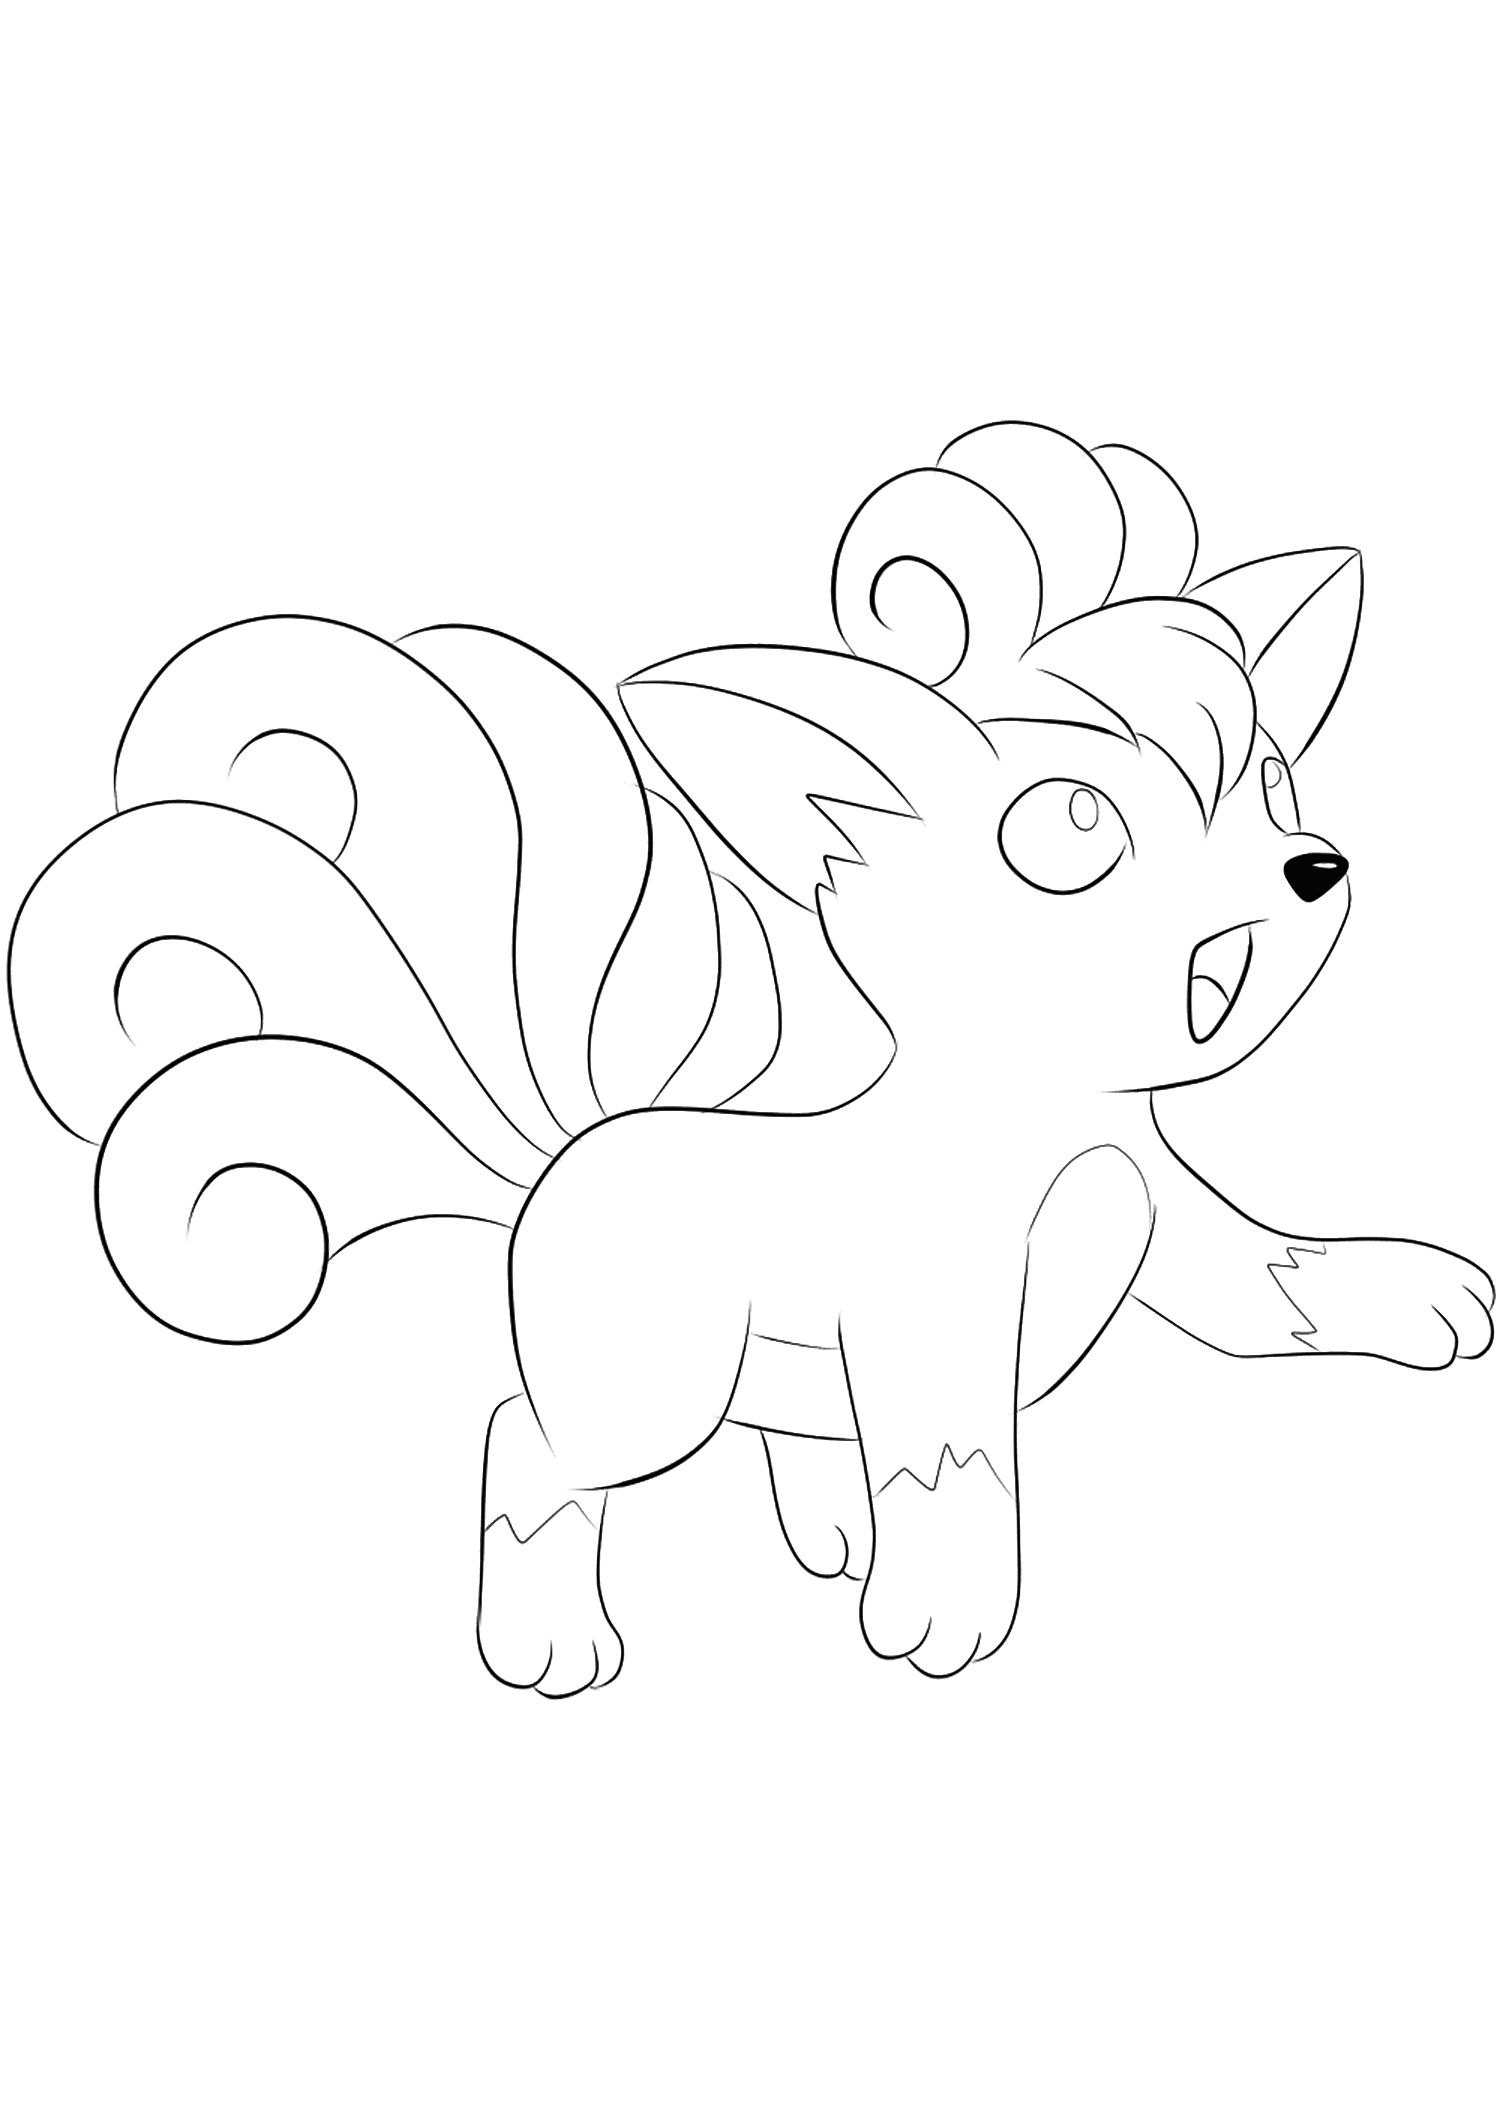 Pokemon Coloring Pages Vulpix Pokemon Coloring Pages Alolan Vulpix Pokemon Coloring Pages Vulpix Coloring Pages Pokemon Coloring Pages Pokemon Coloring